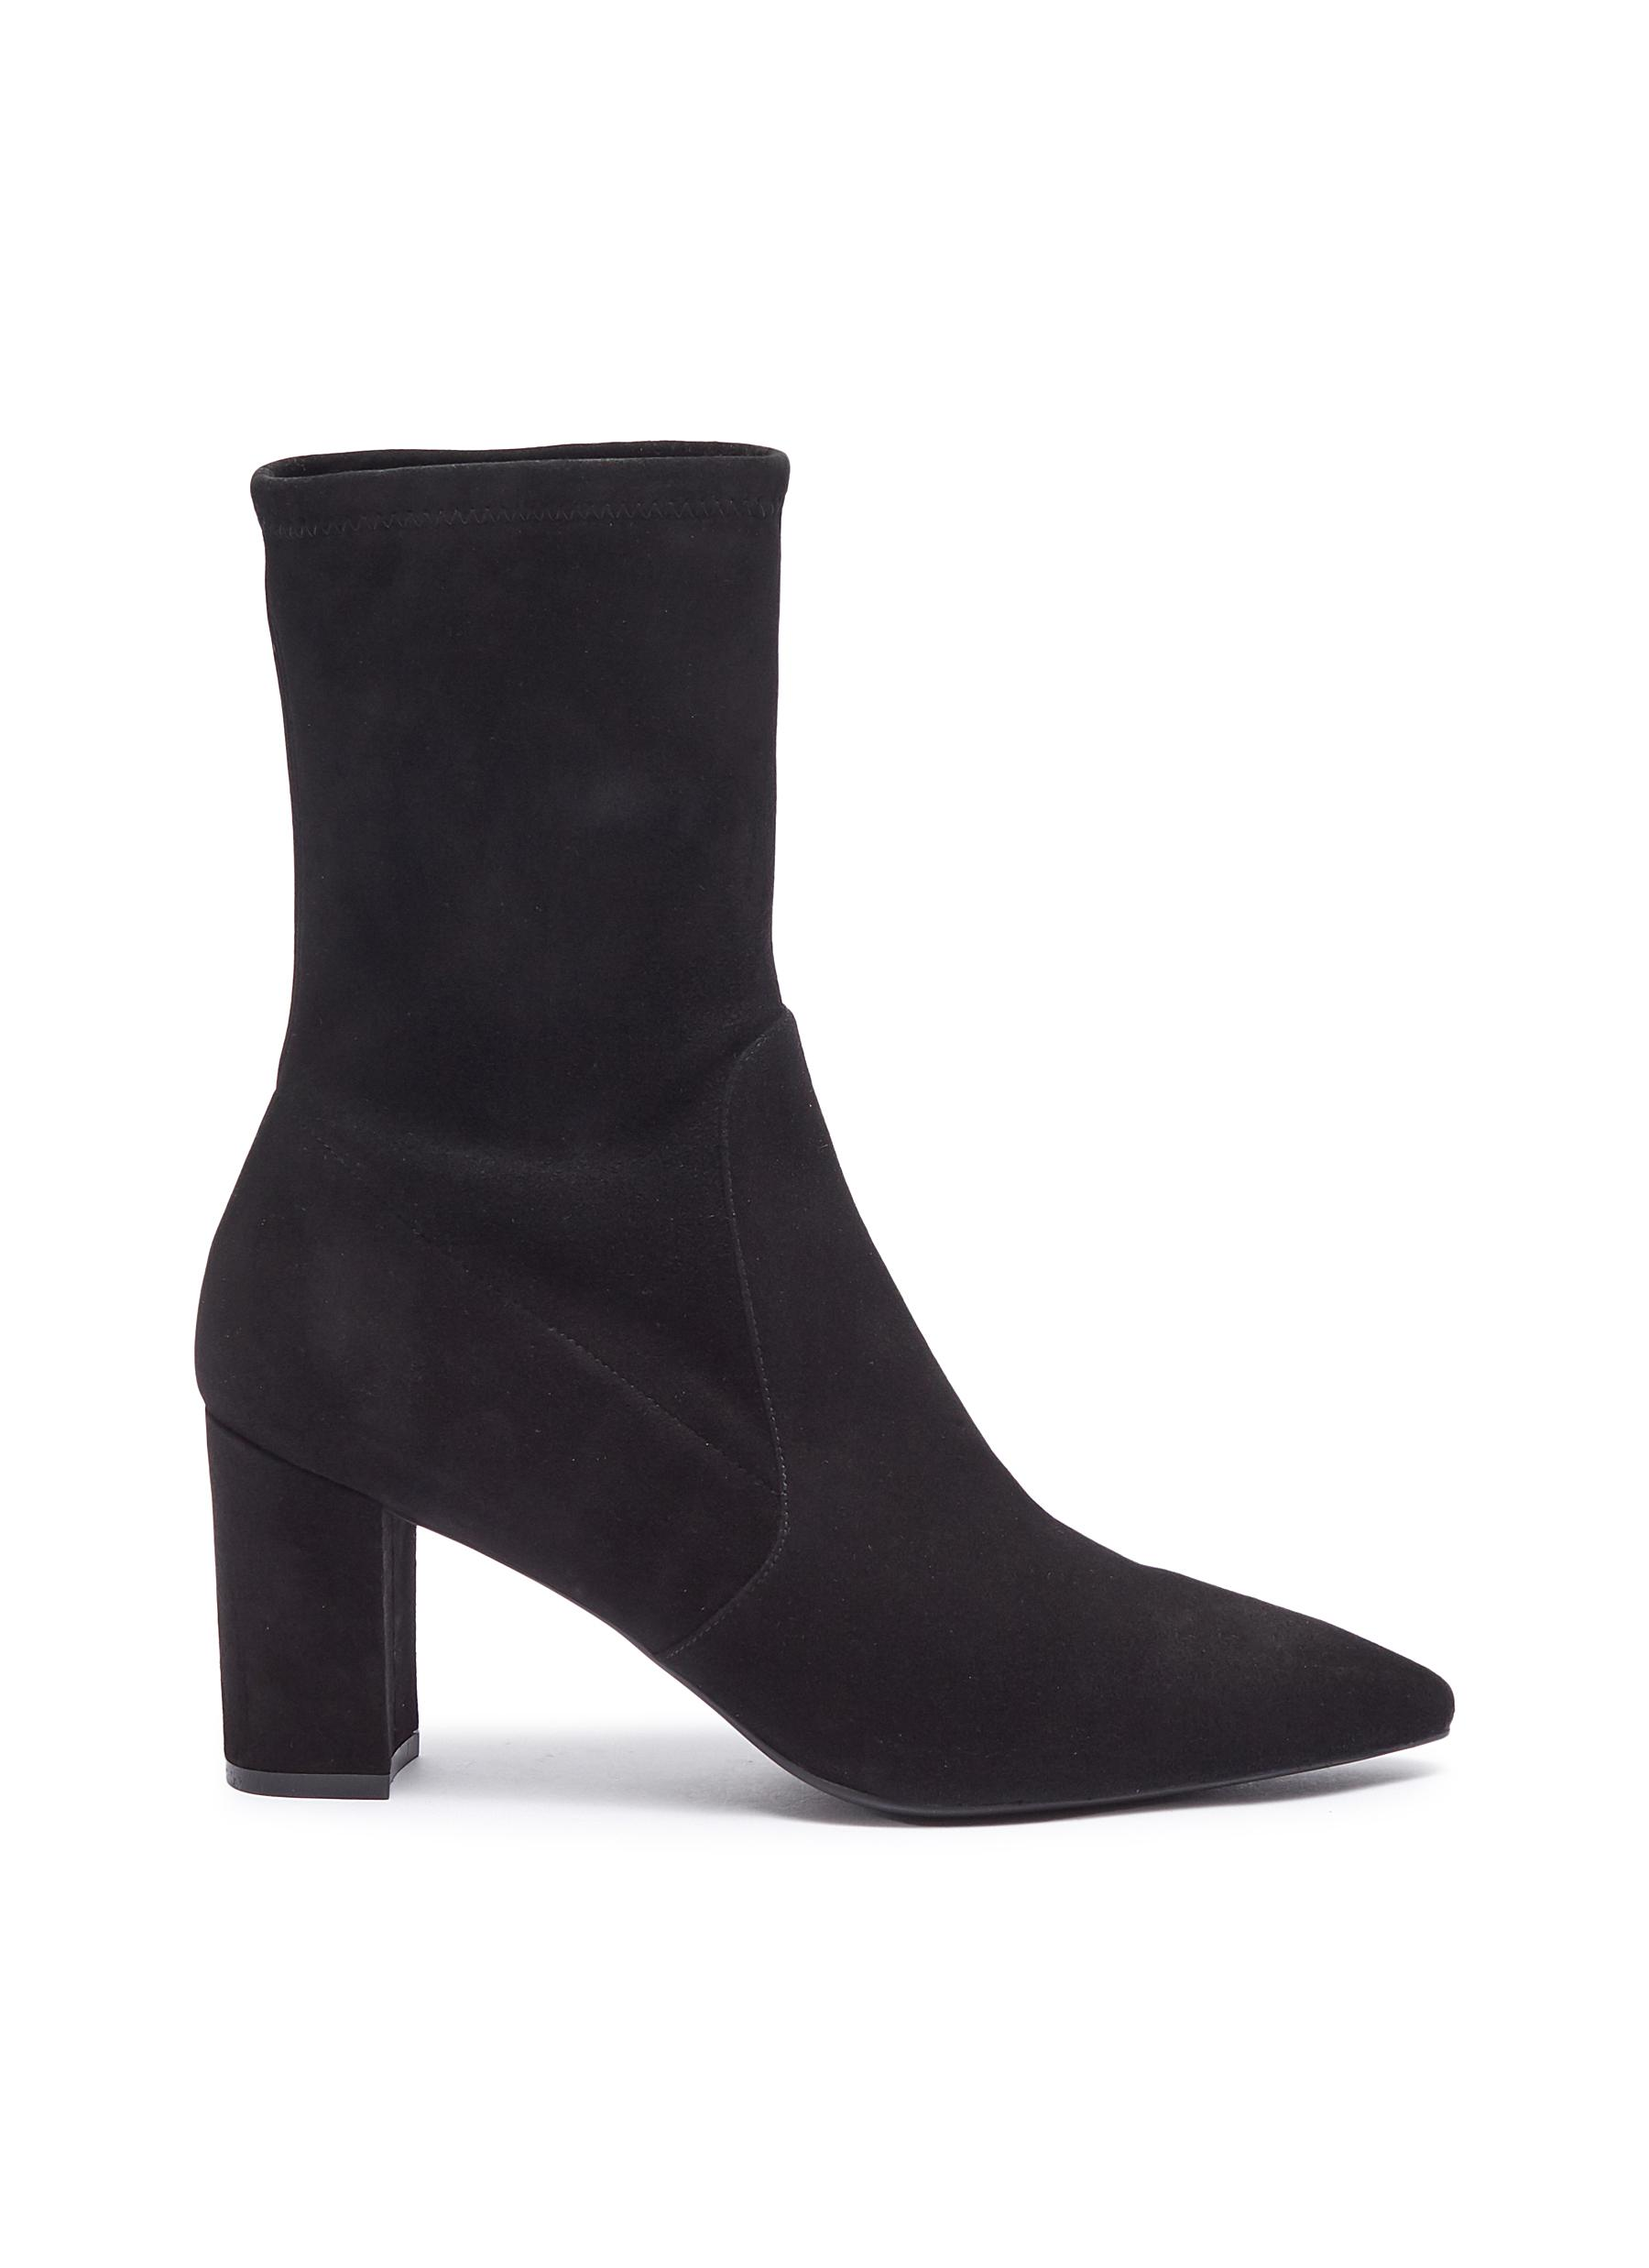 Landry stretch suede panelled ankle boots by Stuart Weitzman